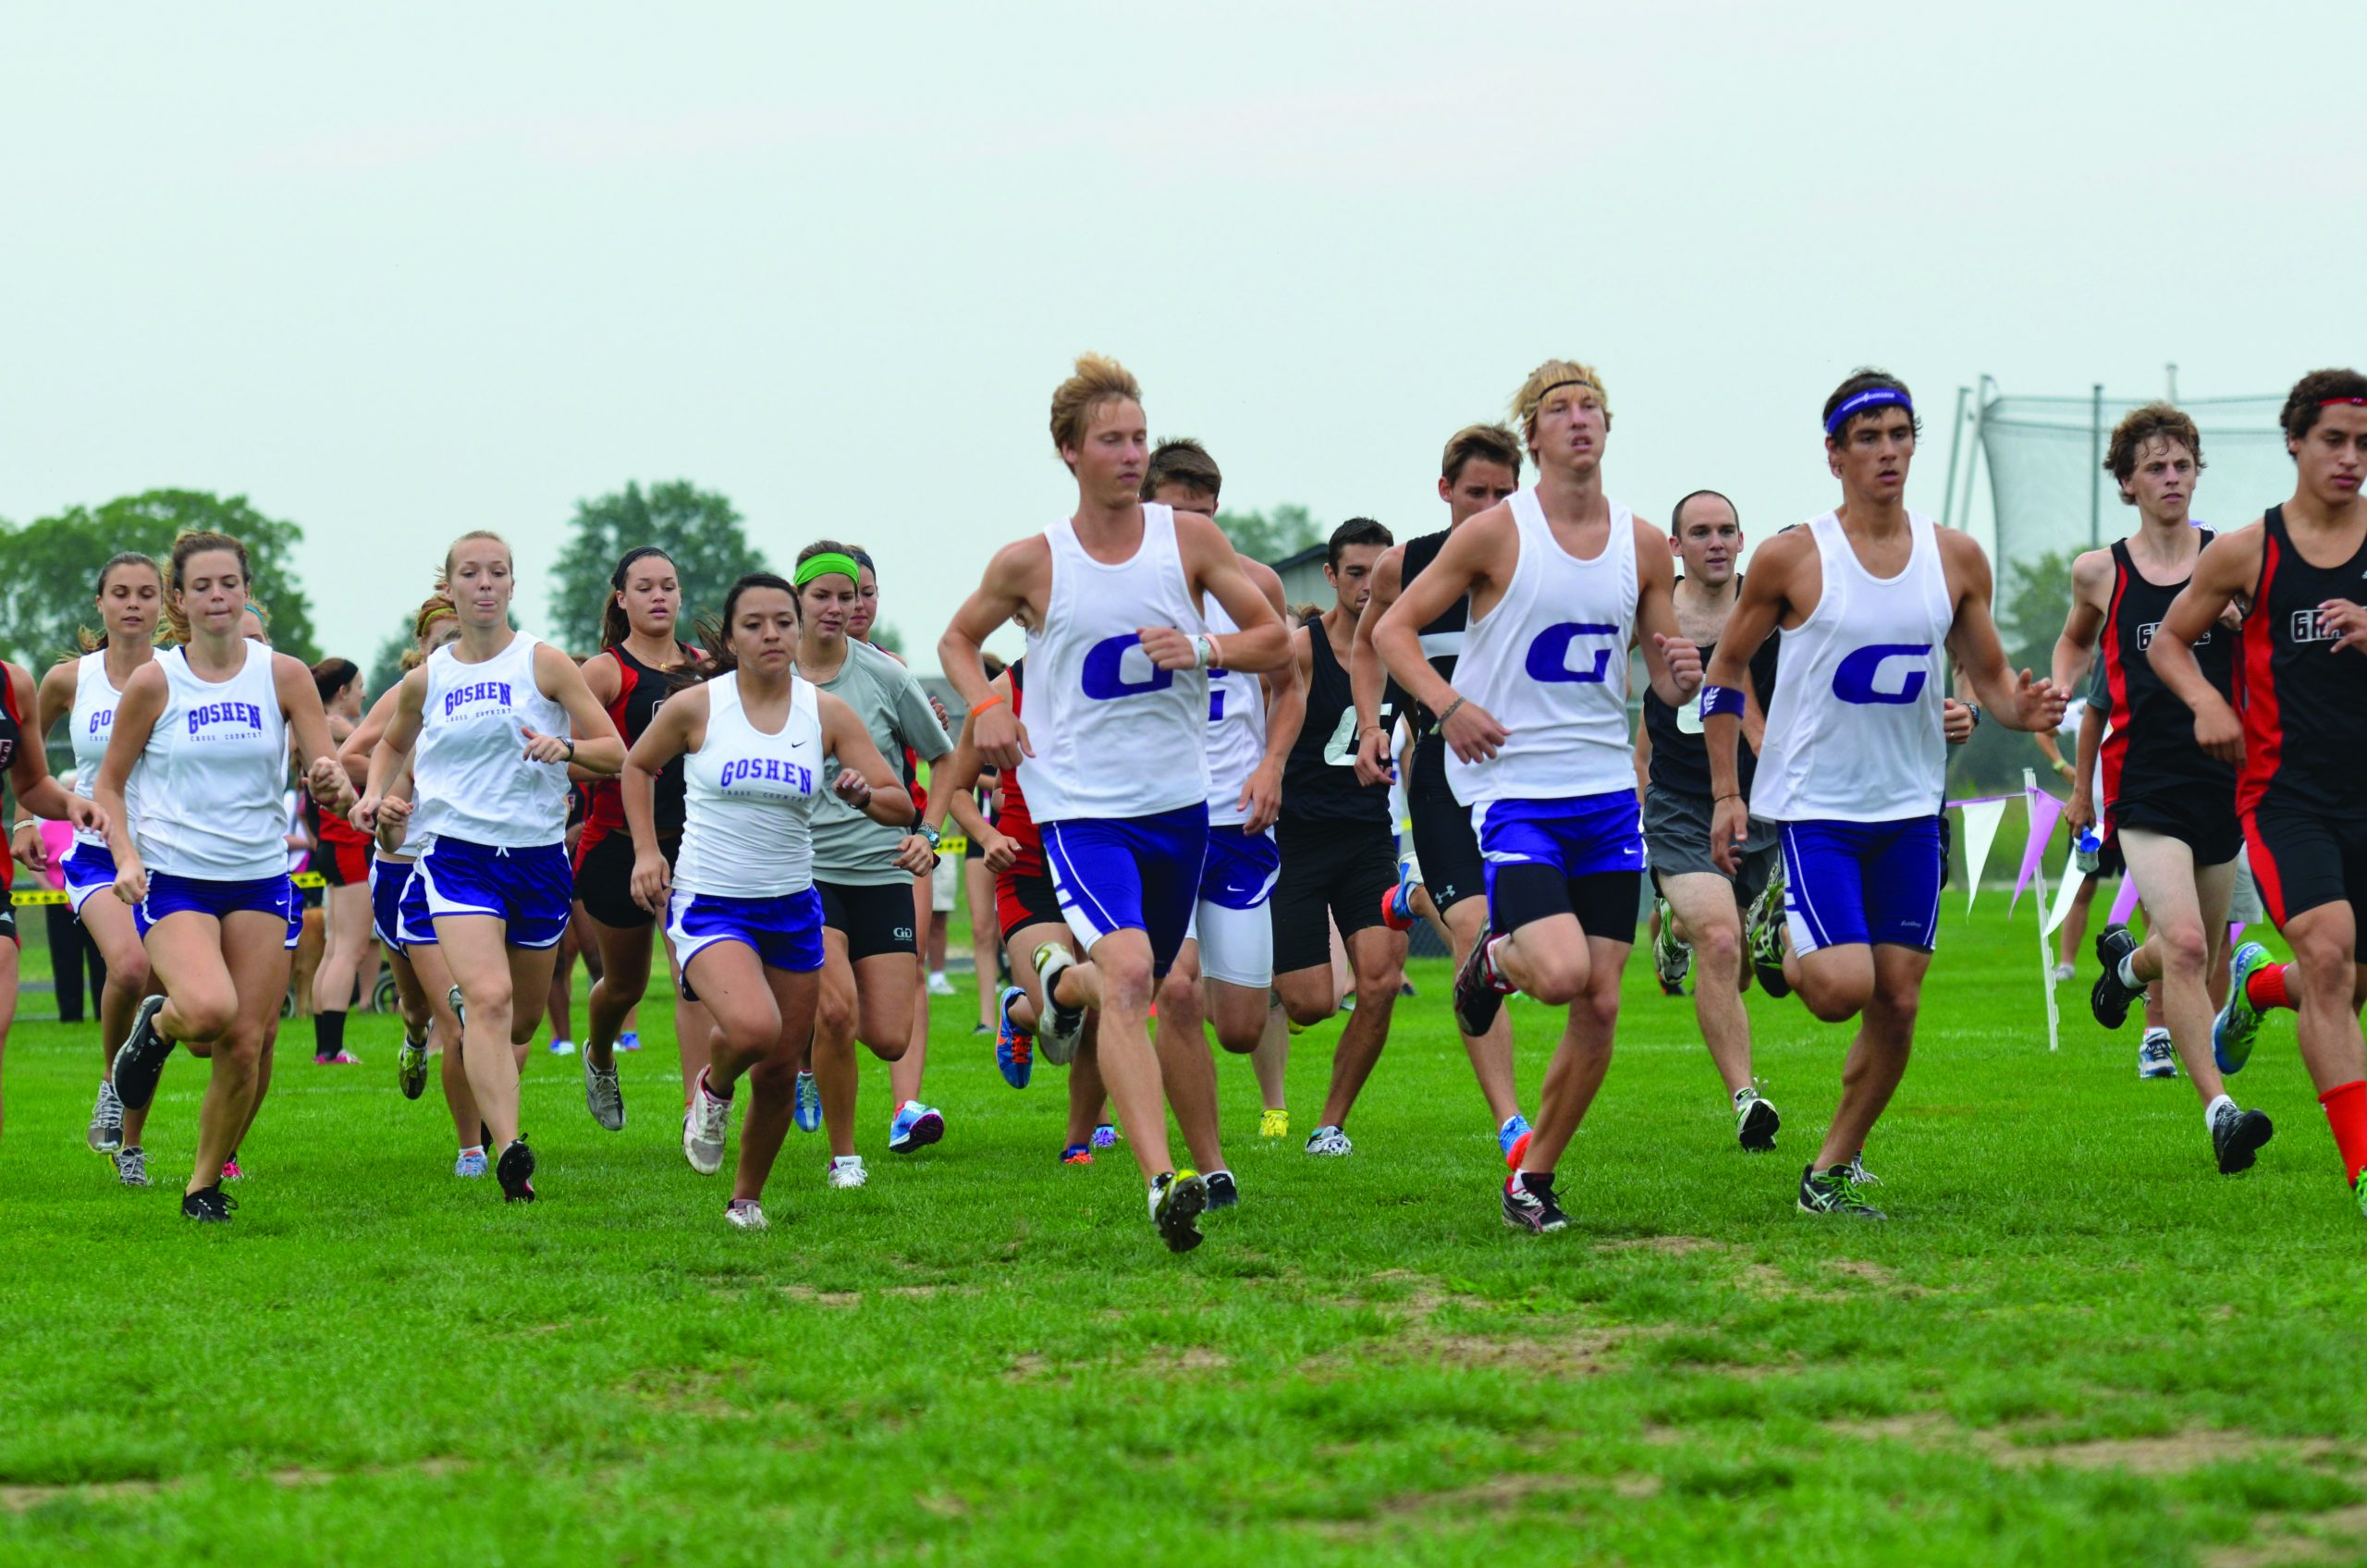 large pack of cross country runners